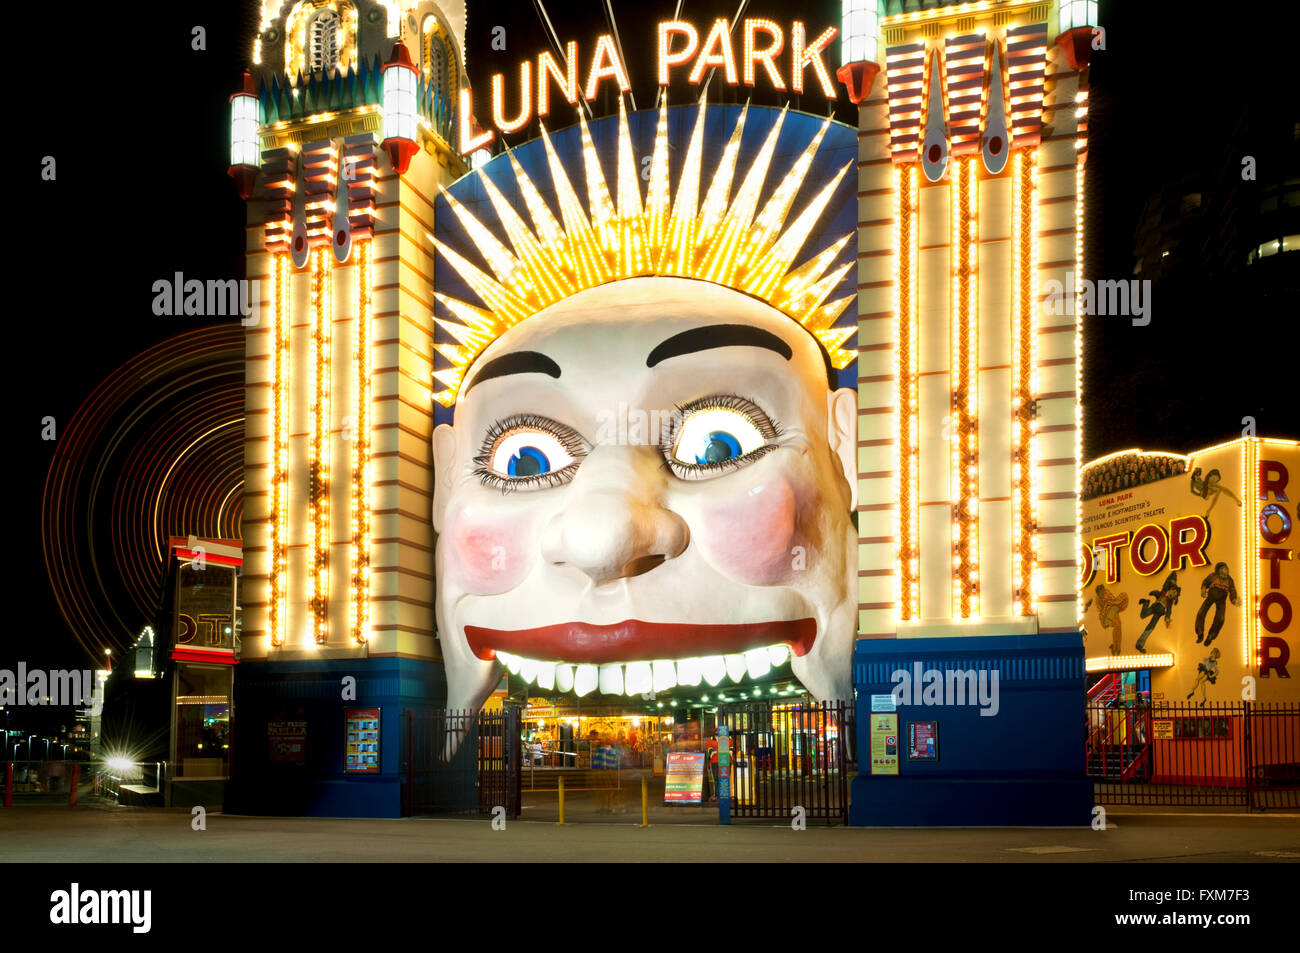 Entrance of Sydney's famous Luna Park, right under the Harbour Bridge. - Stock Image